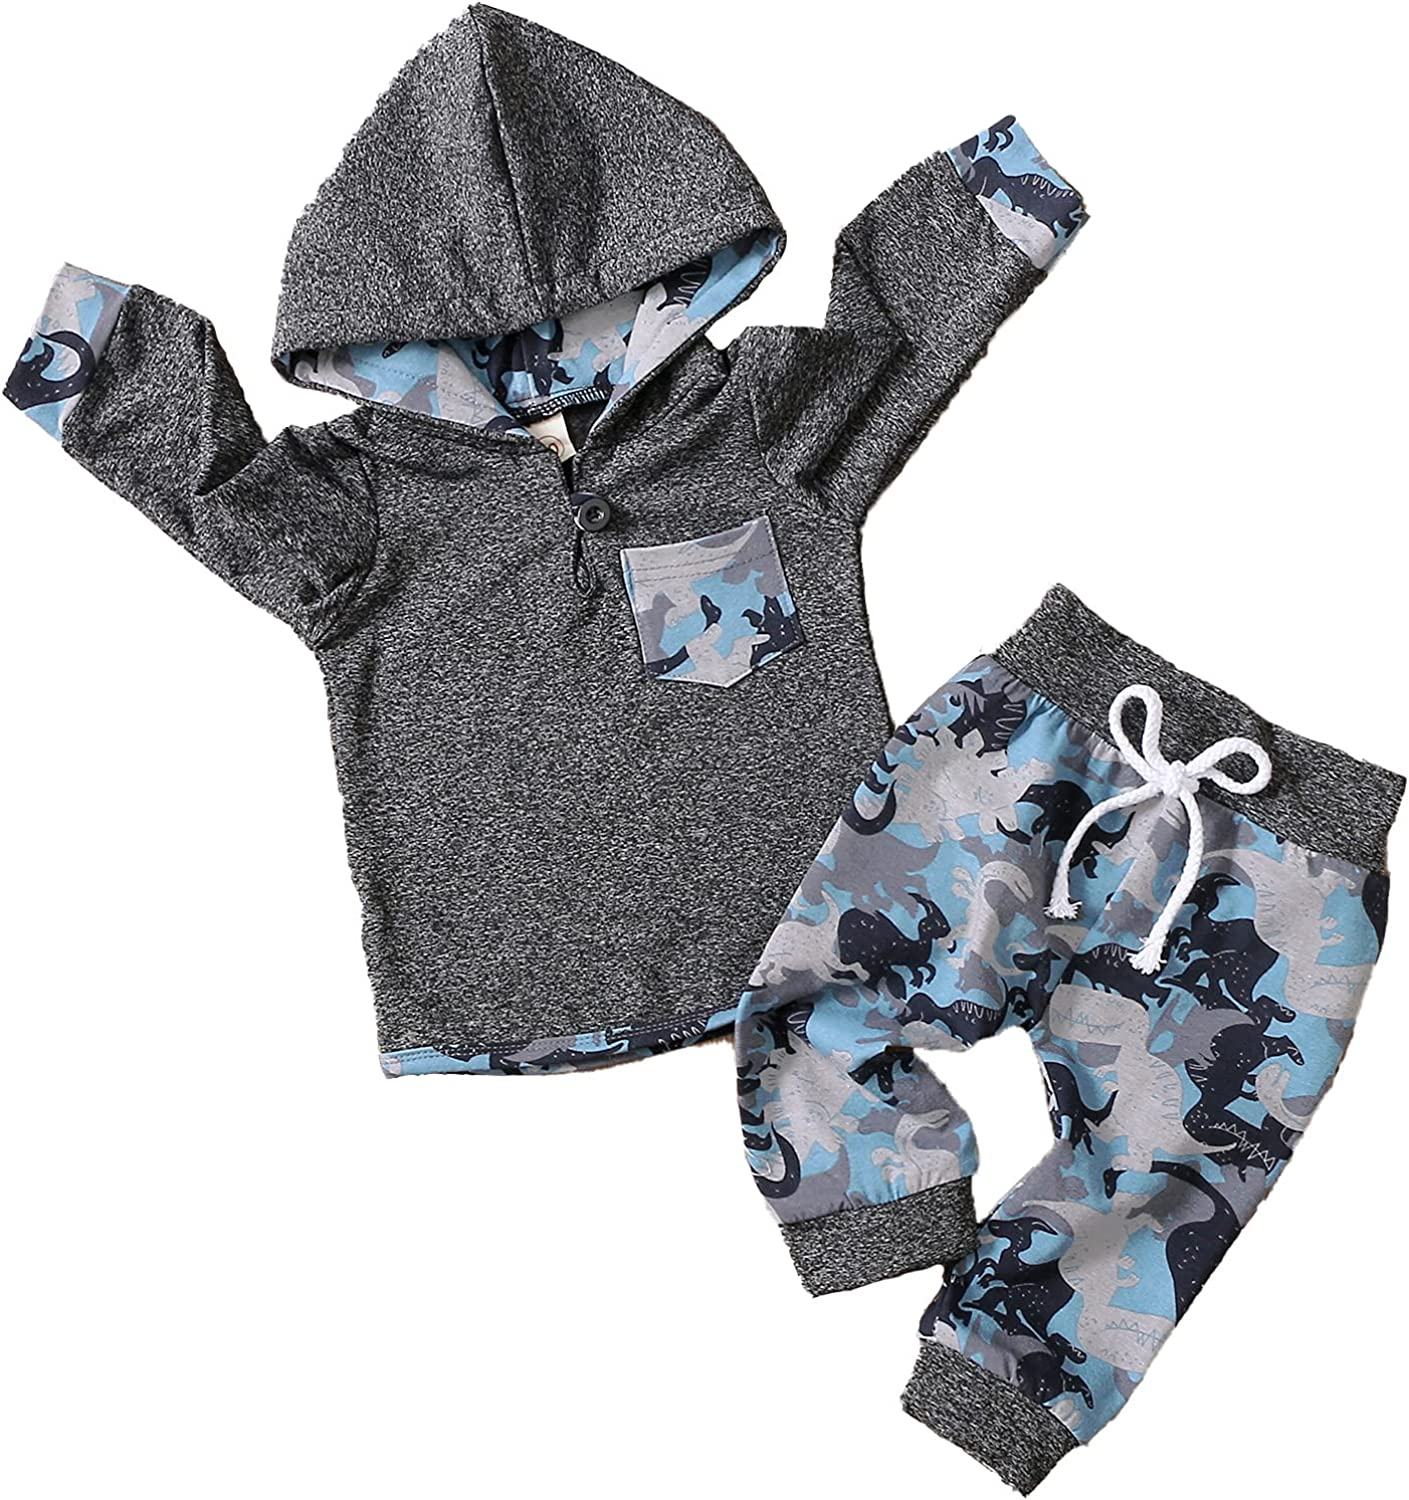 Toddler Infant Baby Boy Dinosaur Tracksuit Outfits Hoodie Hooded Sweatshirt + Trousers Autumn Spring Street Clothes Set